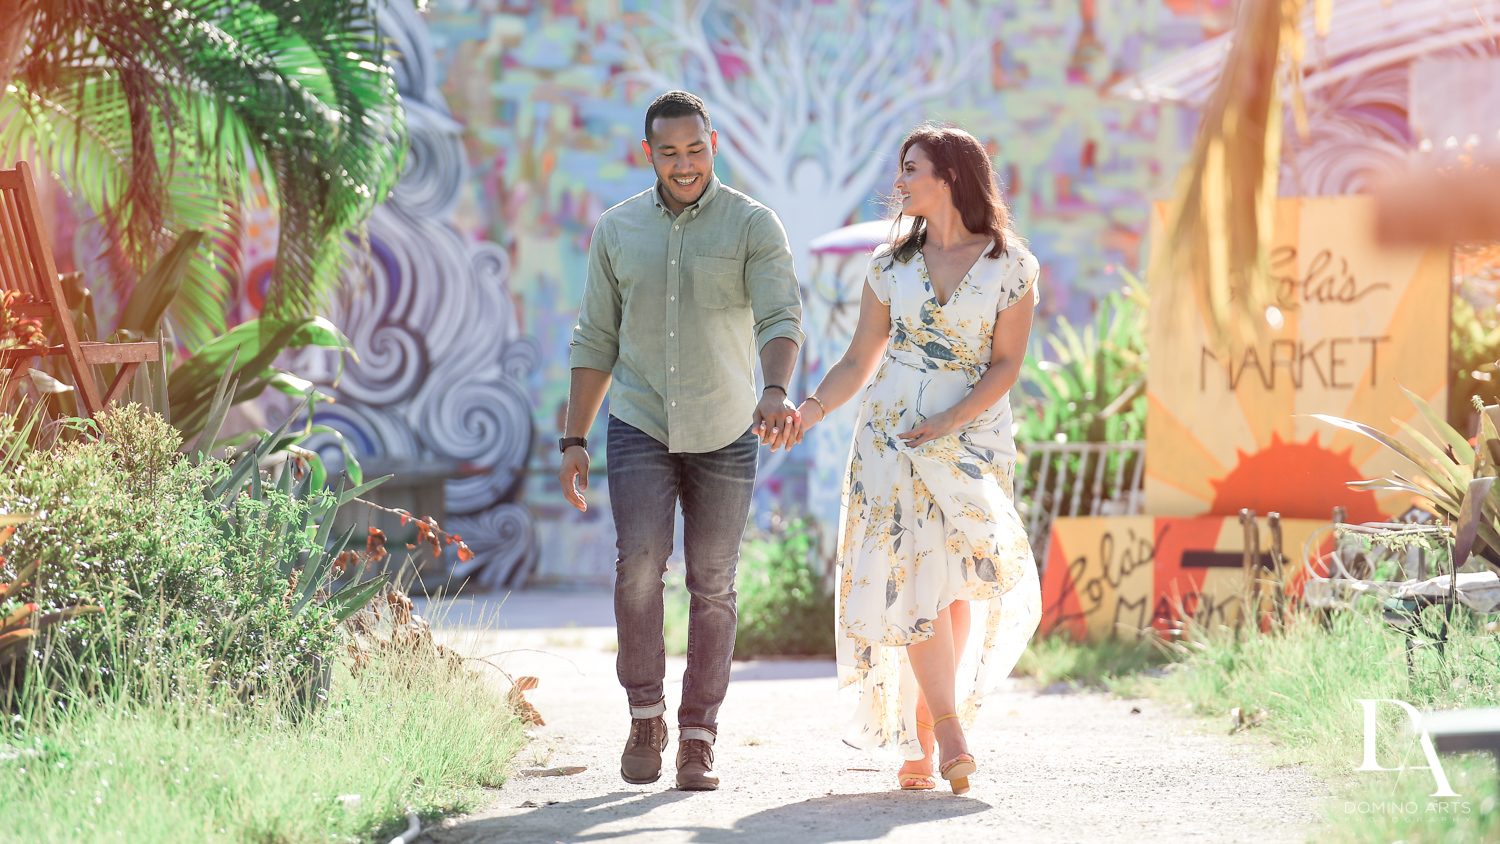 Fort Lauderdale Romantic Engagement Session at Graffiti Walls by Domino Arts Photography